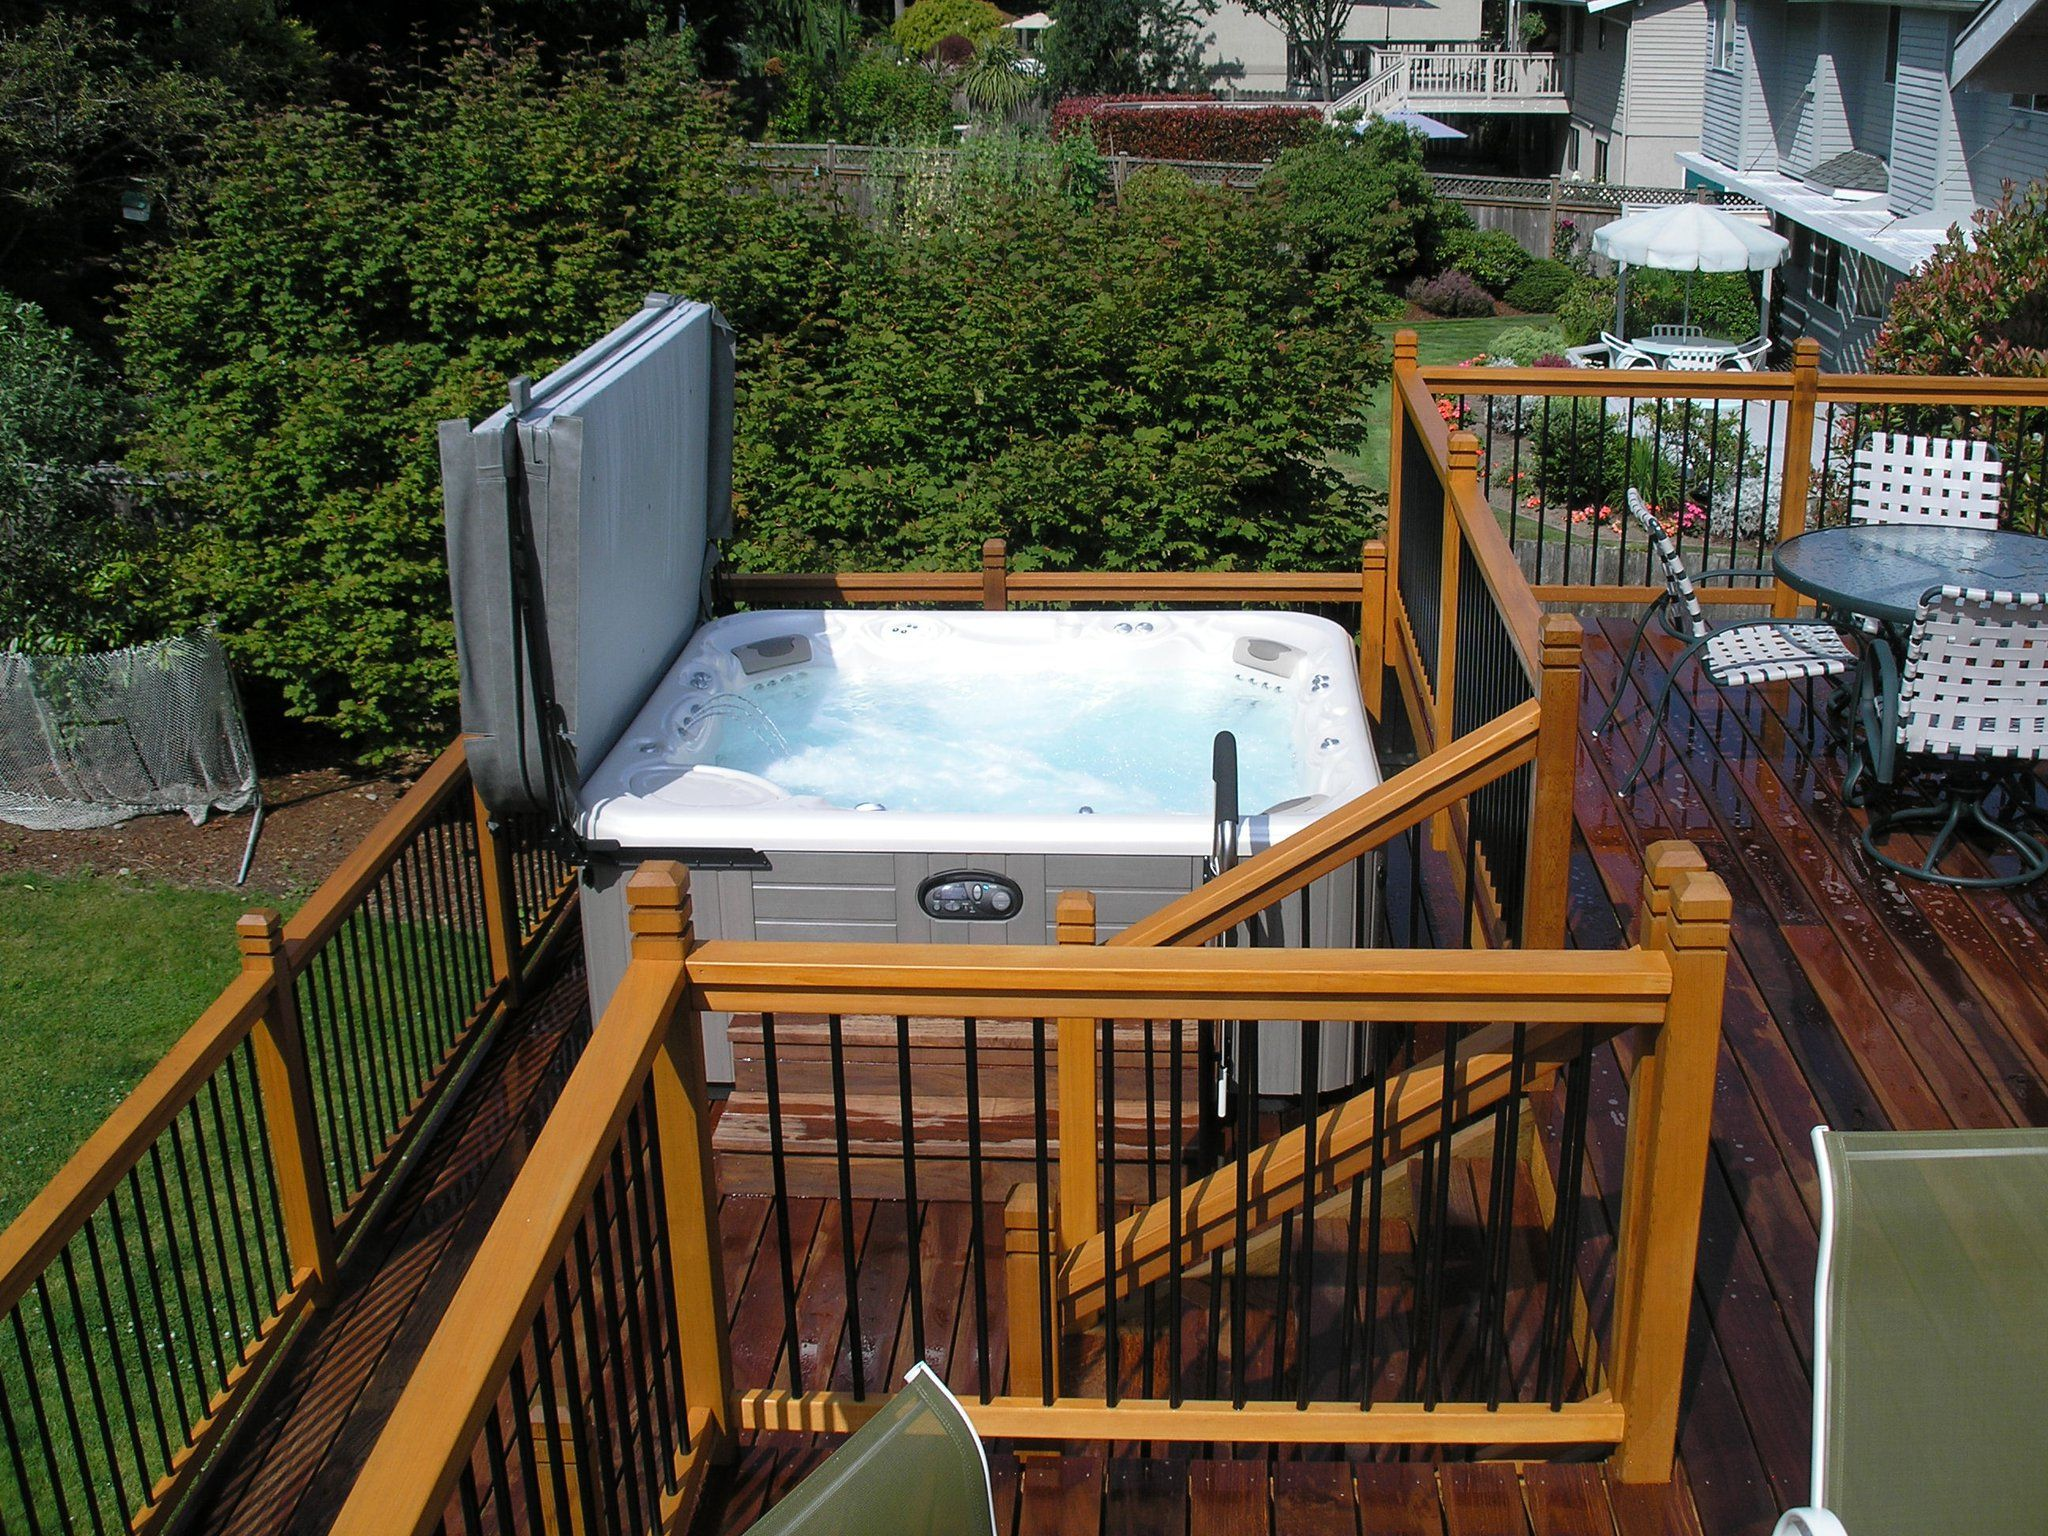 pics of afordable hot tubs